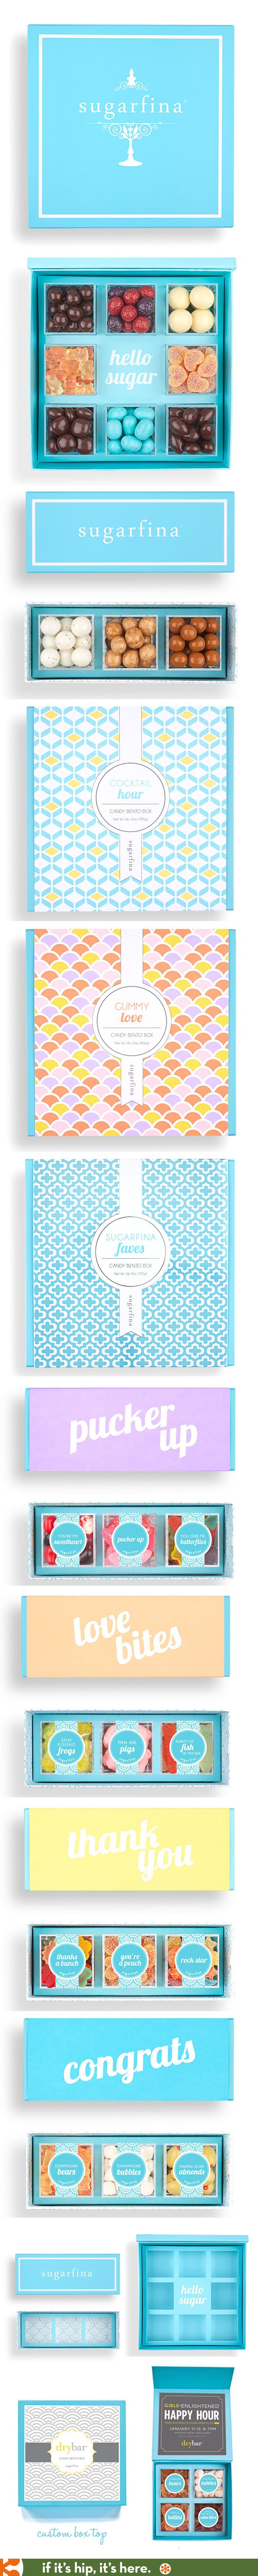 Sugarfina's beautiful packaging which uses soy-based inks and recycled paper.